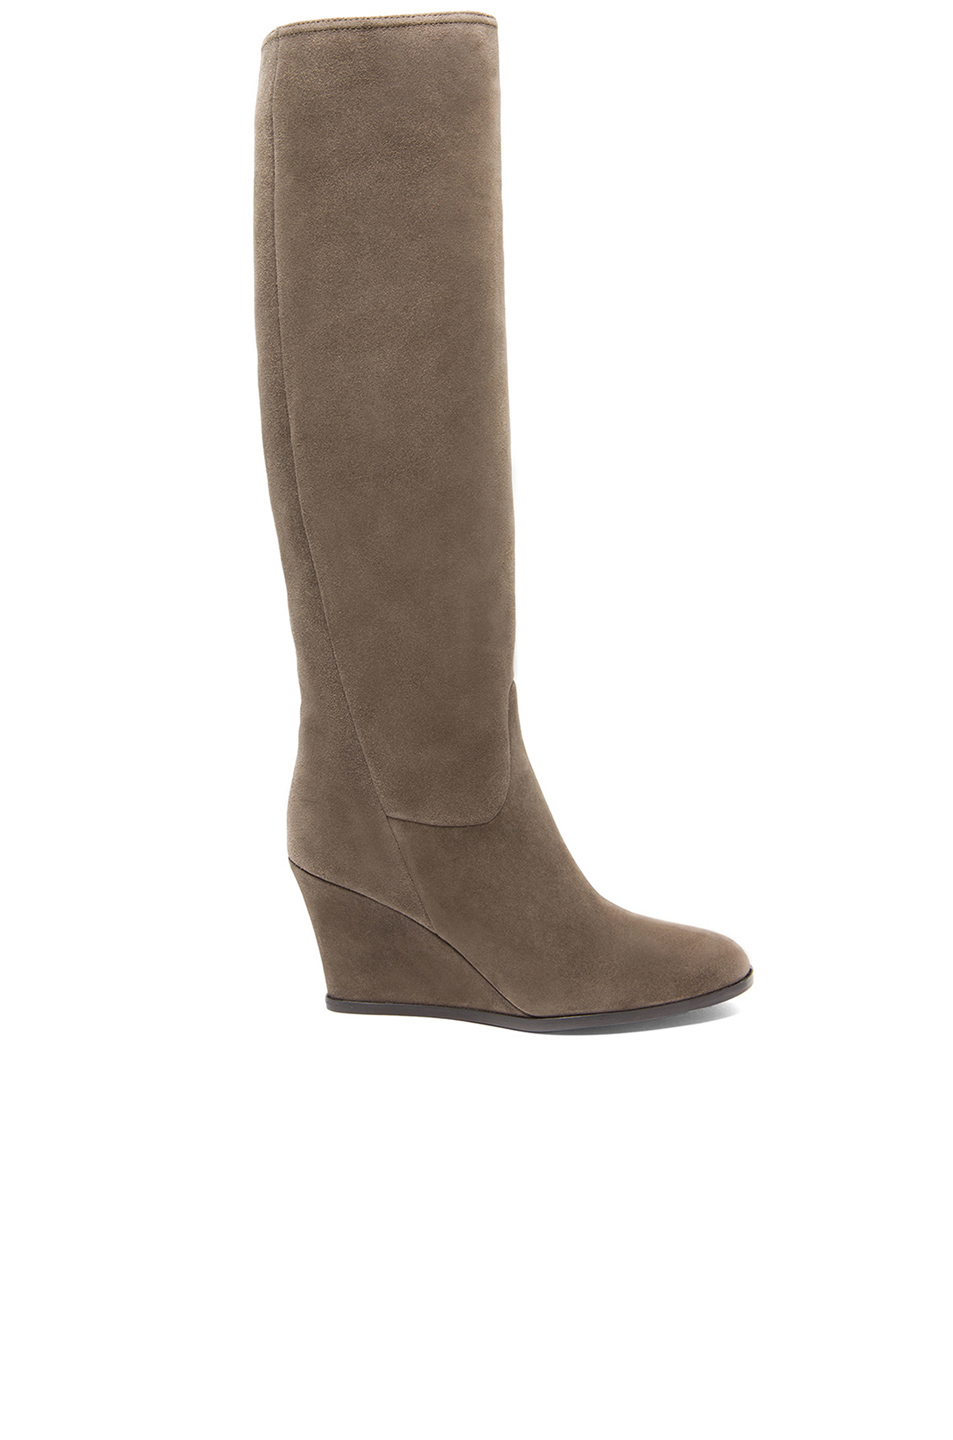 lanvin suede wedge boots in grey fwrd